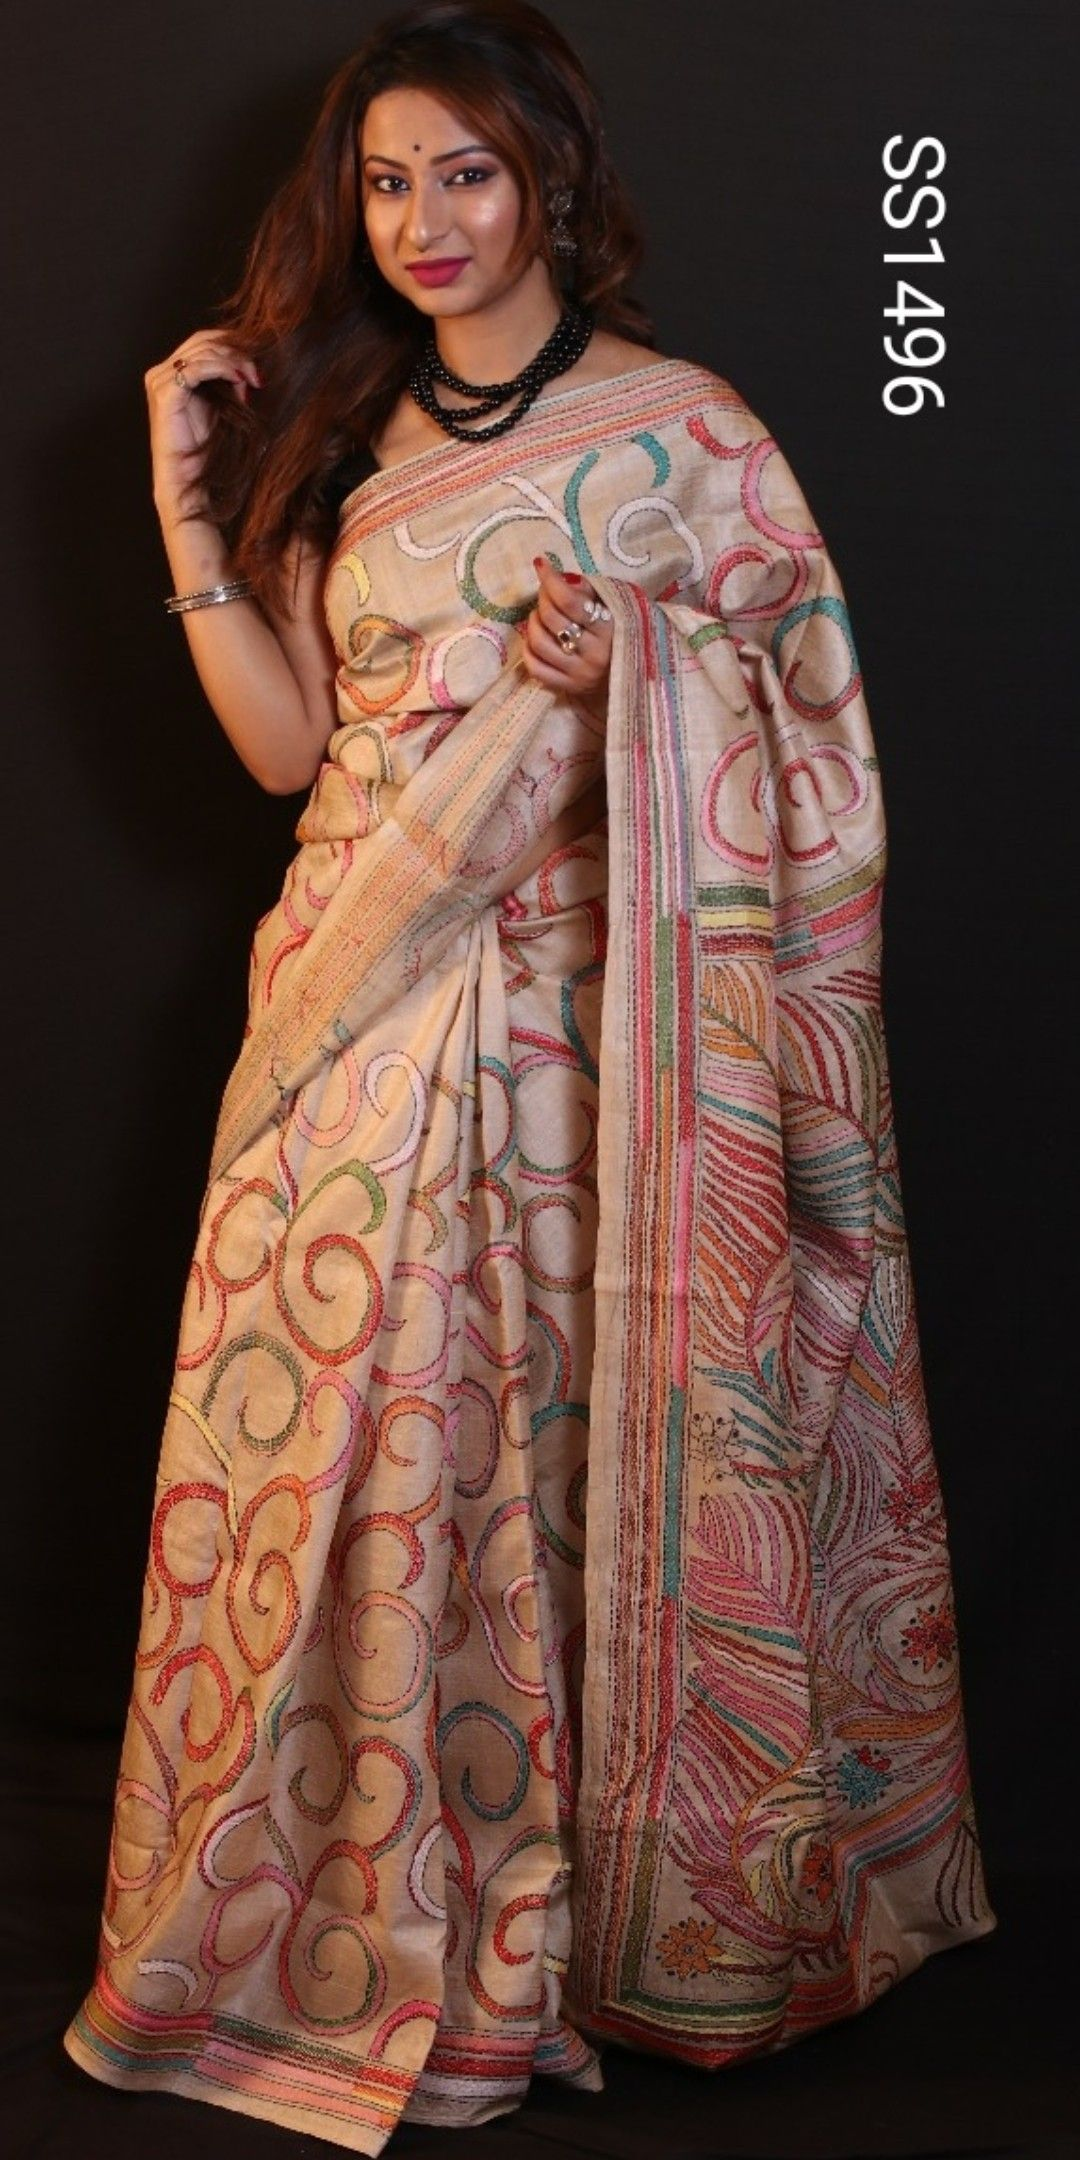 ecab5d1470 Best Quality handmade kantha Embroidery on gachi by gachi tussar Silk  saree. Blouse : yes (Running blouse ,embroidery work on hands only ) Price  - 8200 + ...